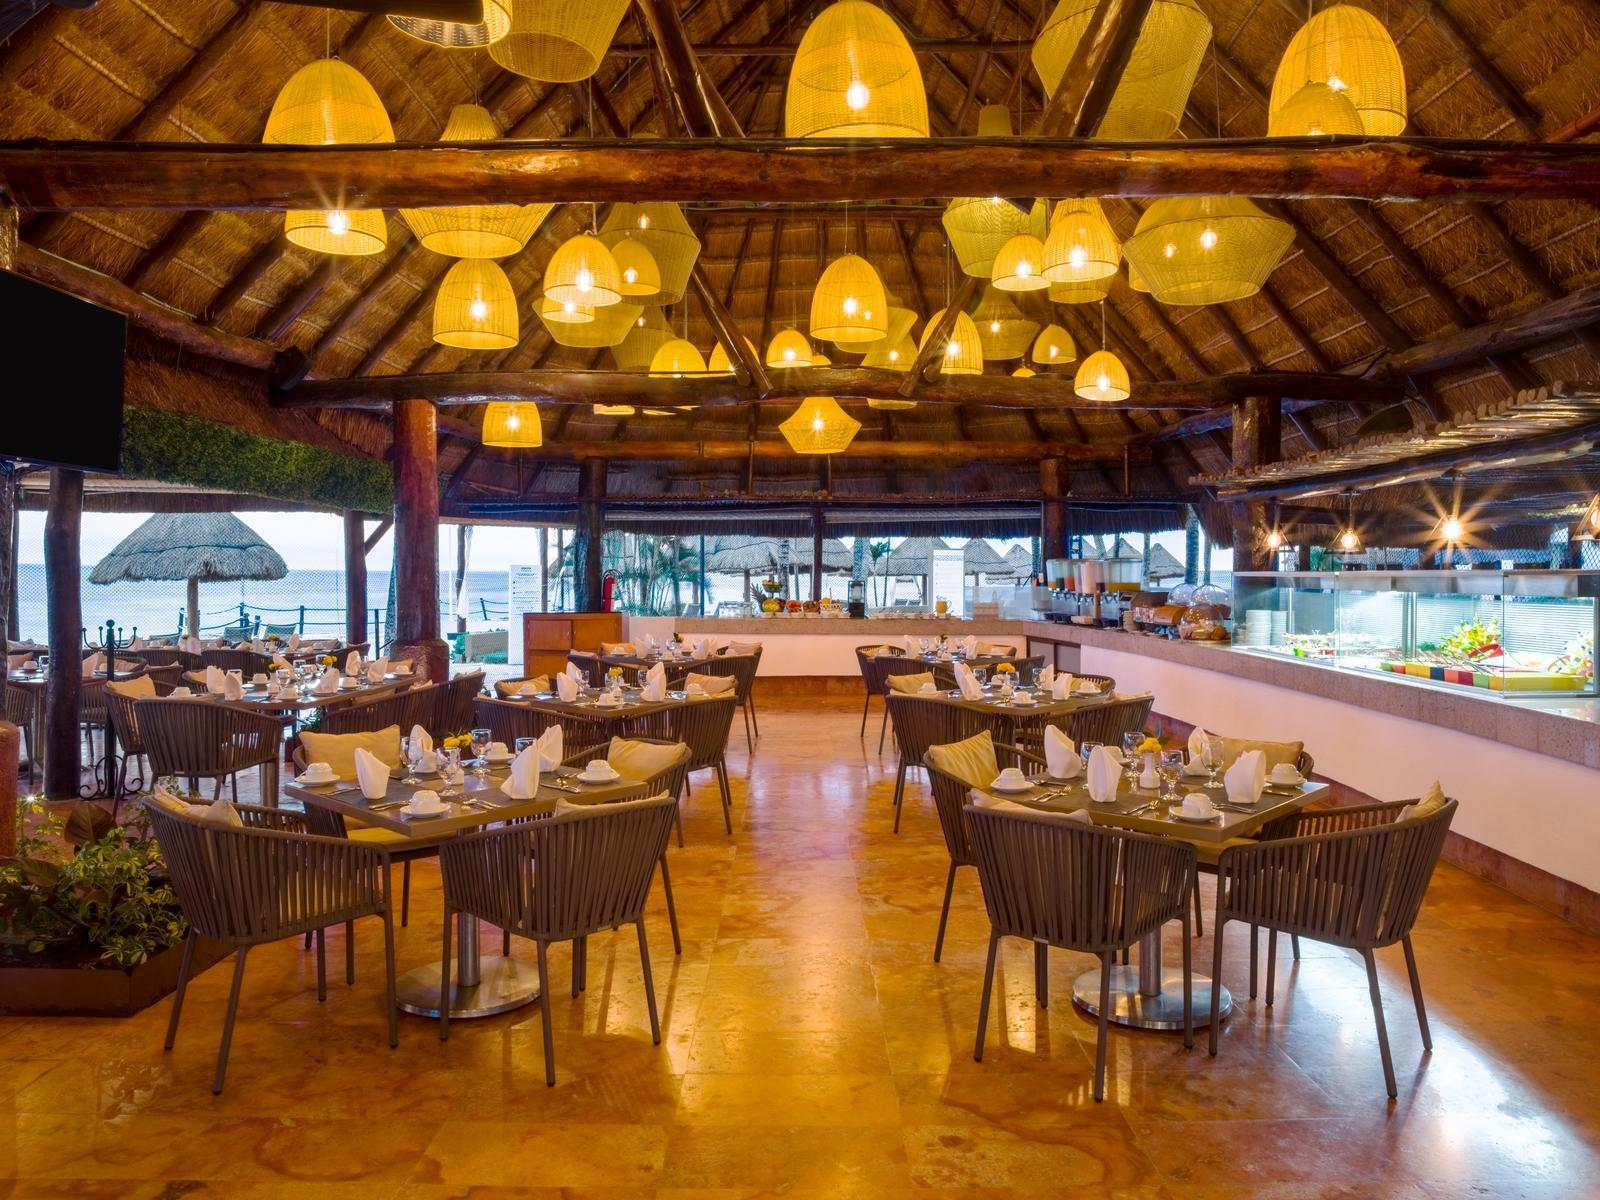 restaurant with buffet and dining tables